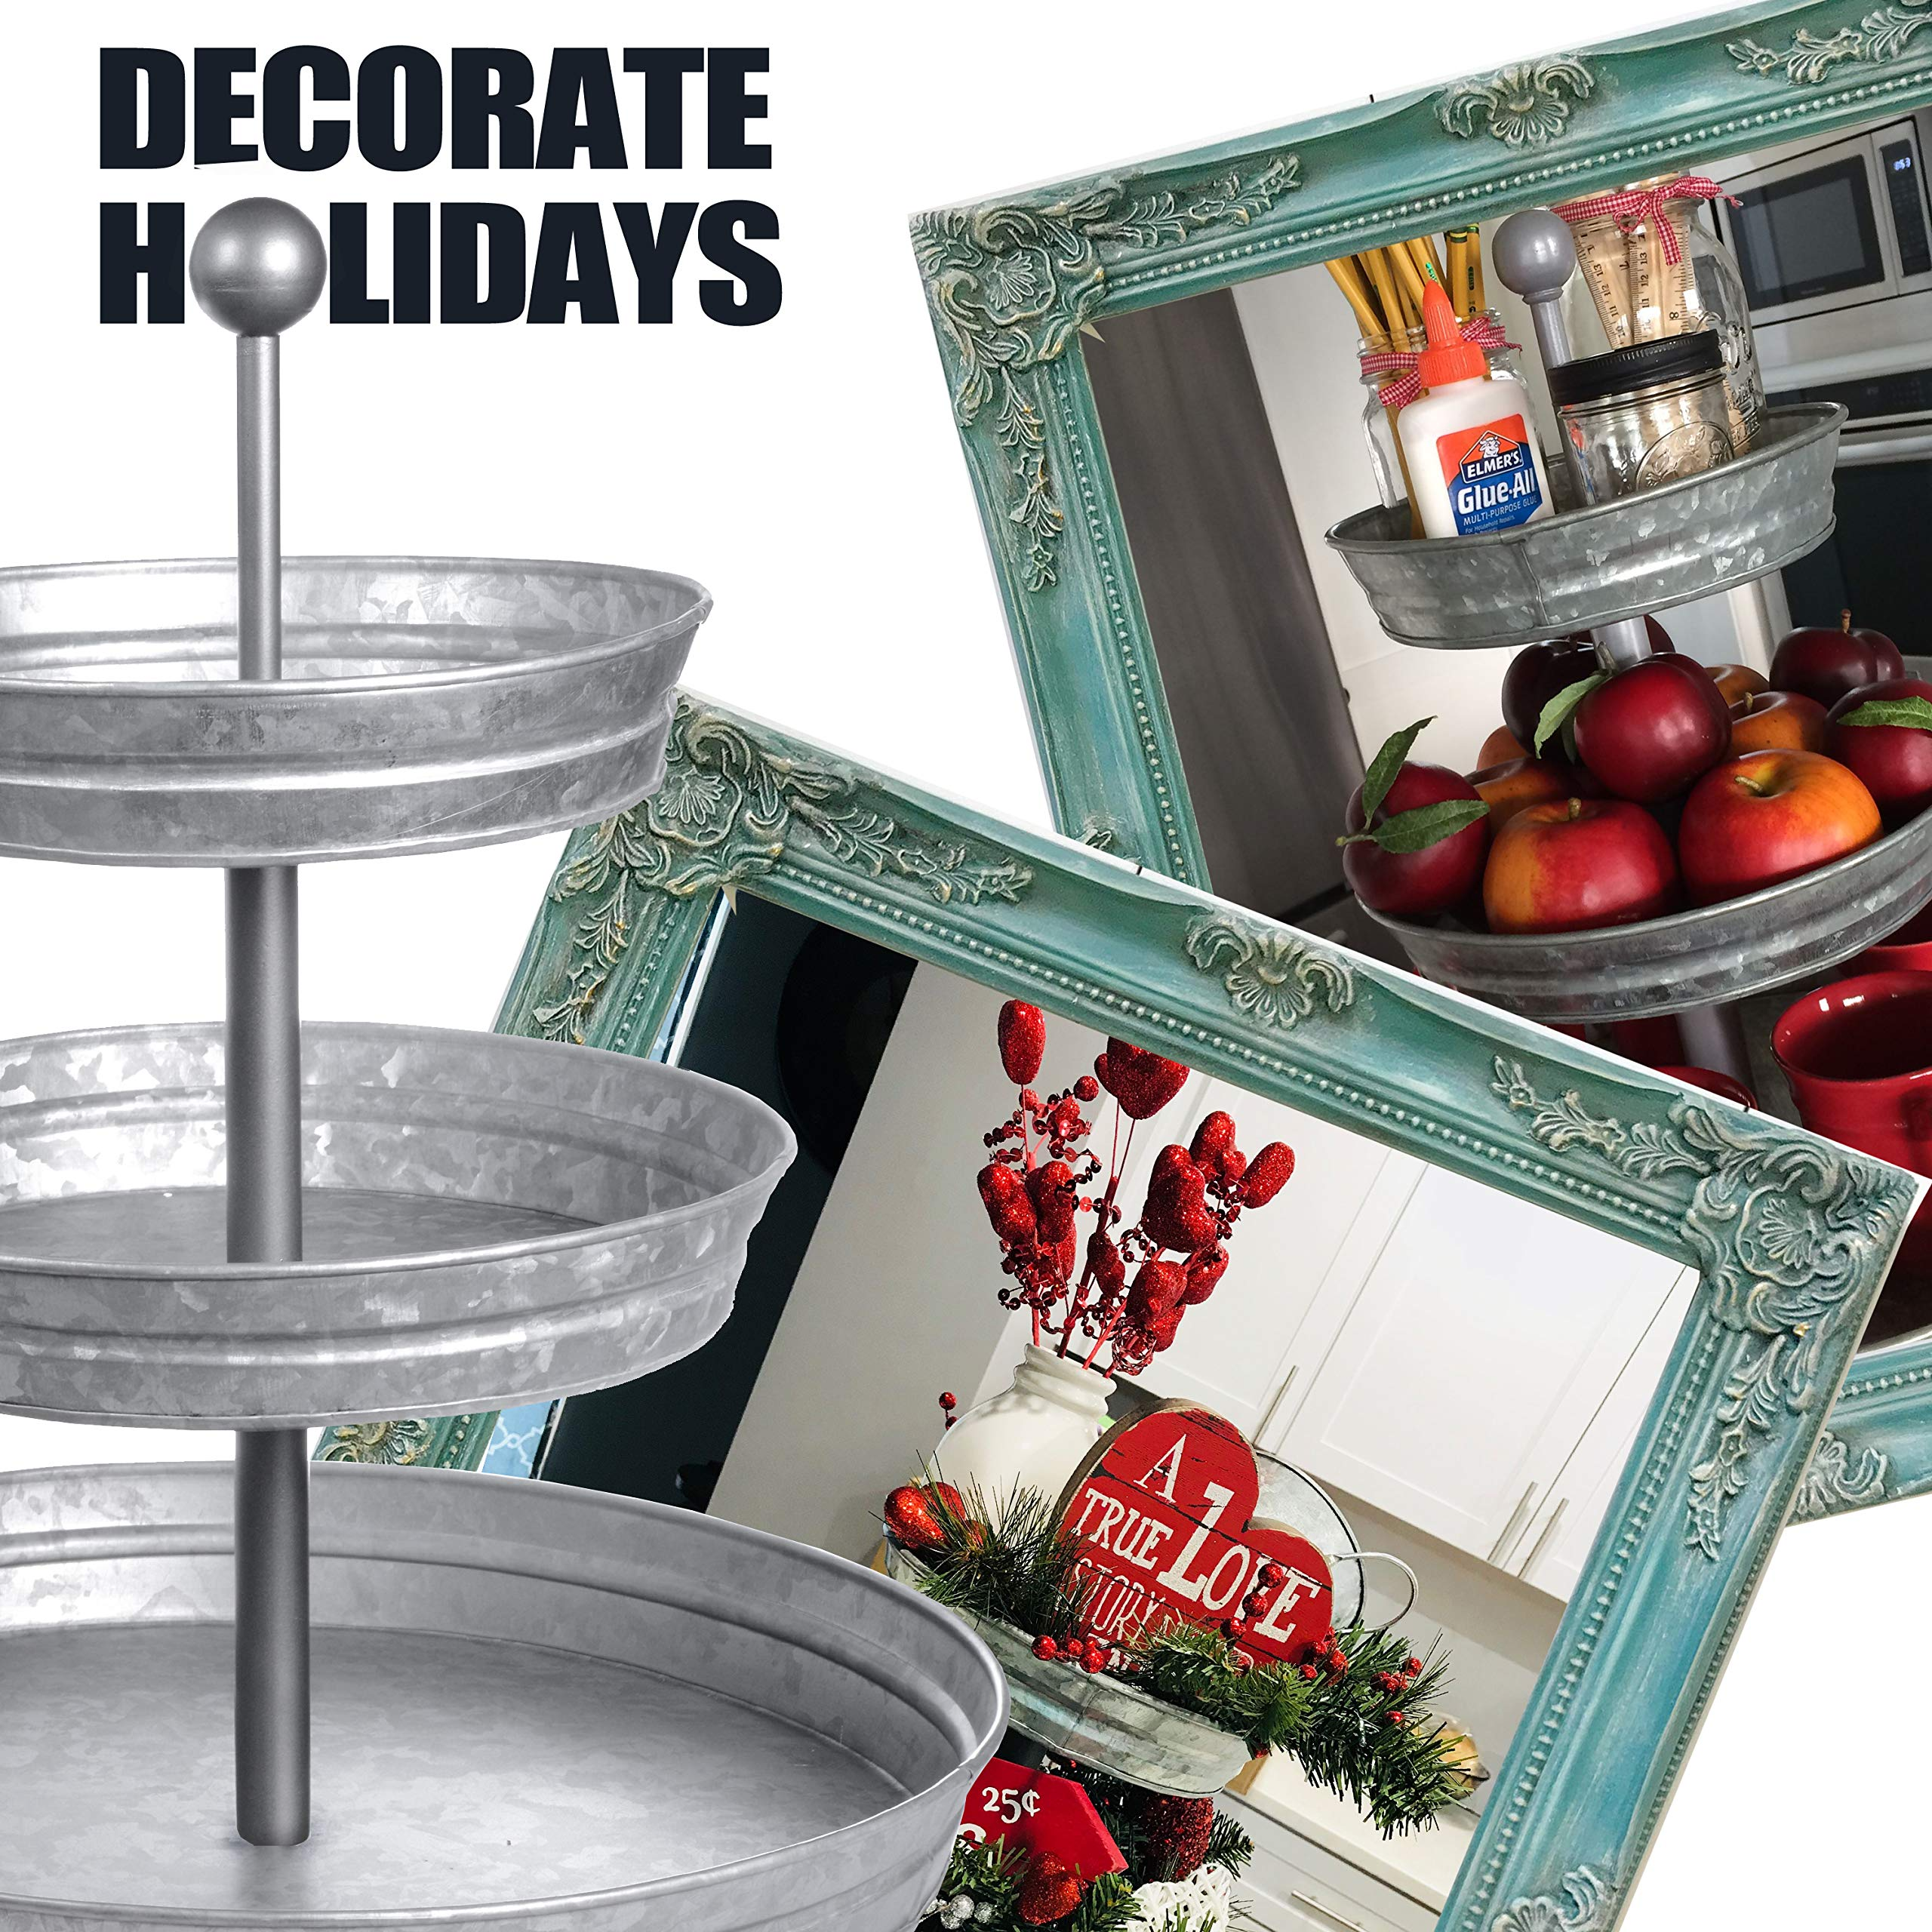 DELBRIO - 3 Tier Serving Tray (Jumbo 17'' Base) Rustic, Decorative Galvanized Metal | Home Farmhouse Decor & Display Stand | Coffee, Fruit & Veggie, Party Bar Serving Tray, Cupcake Stand | FOOD SAFE by DELBRIO (Image #4)